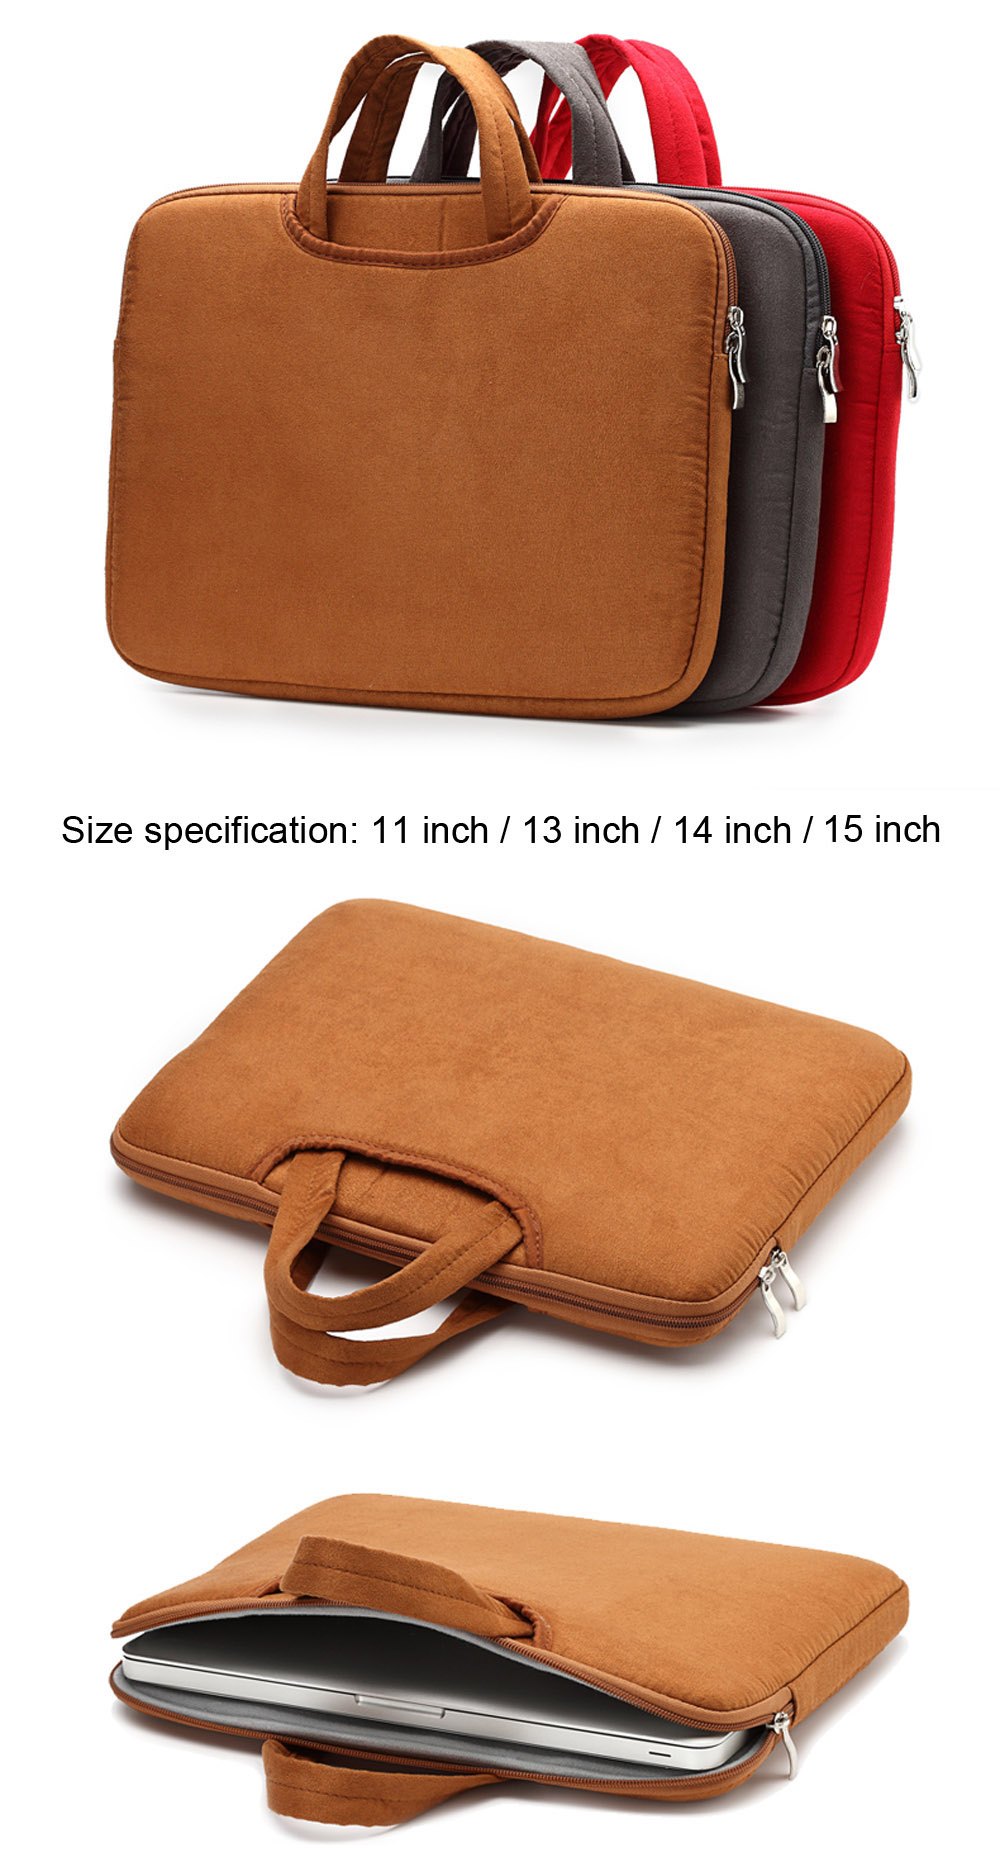 15 inch Laptop Bag Protective  Pouch for MacBook Air / Pro